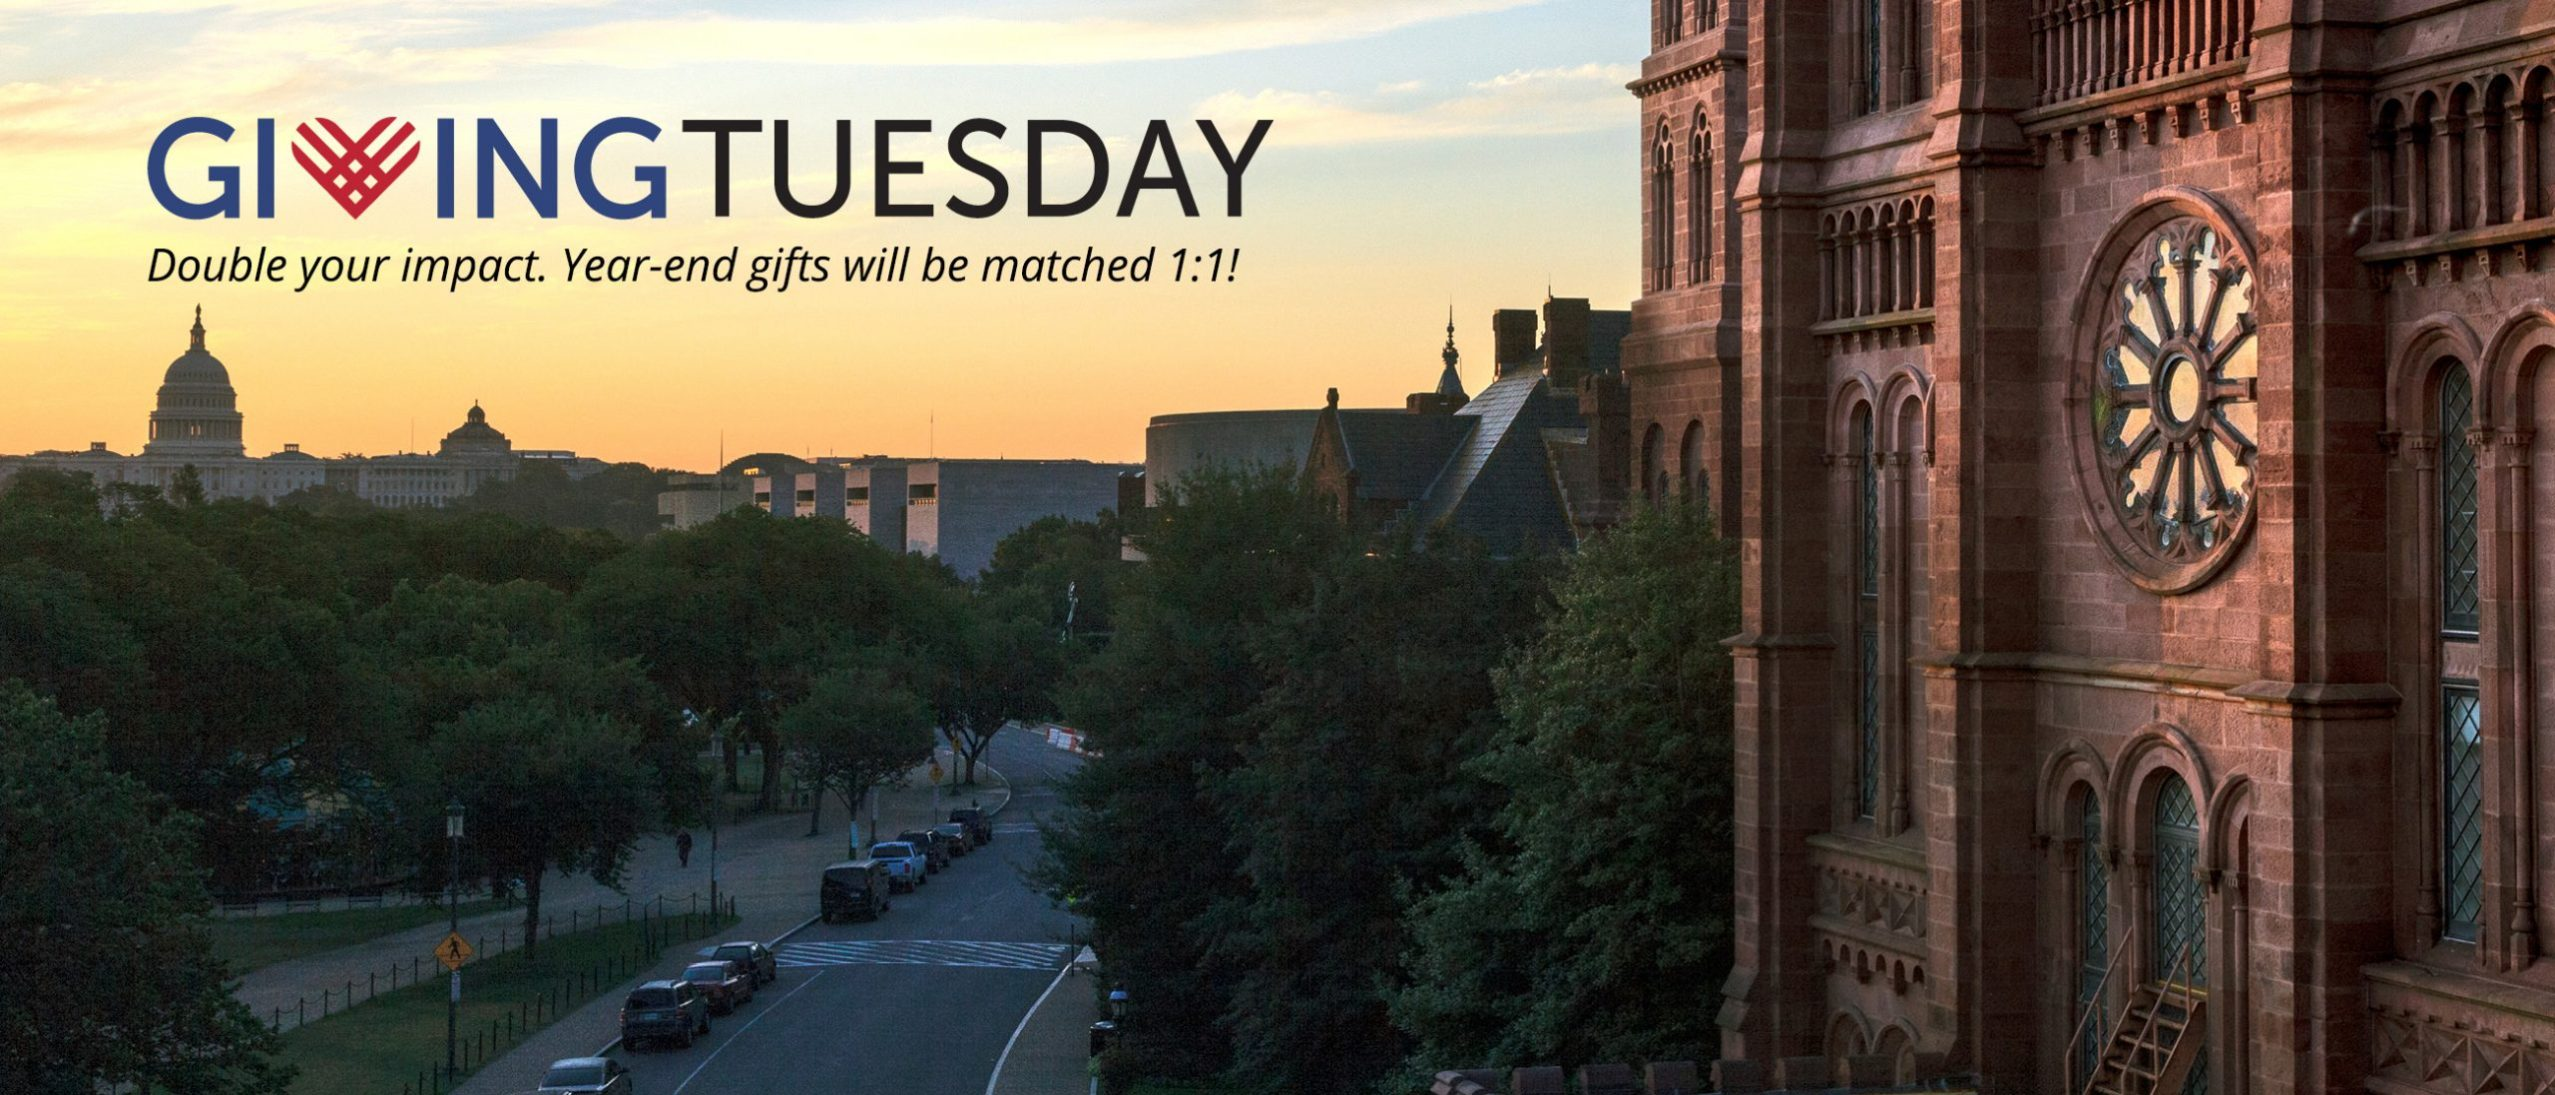 Giving Tuesday - double your impact. year end gifts will be matched 1:1!